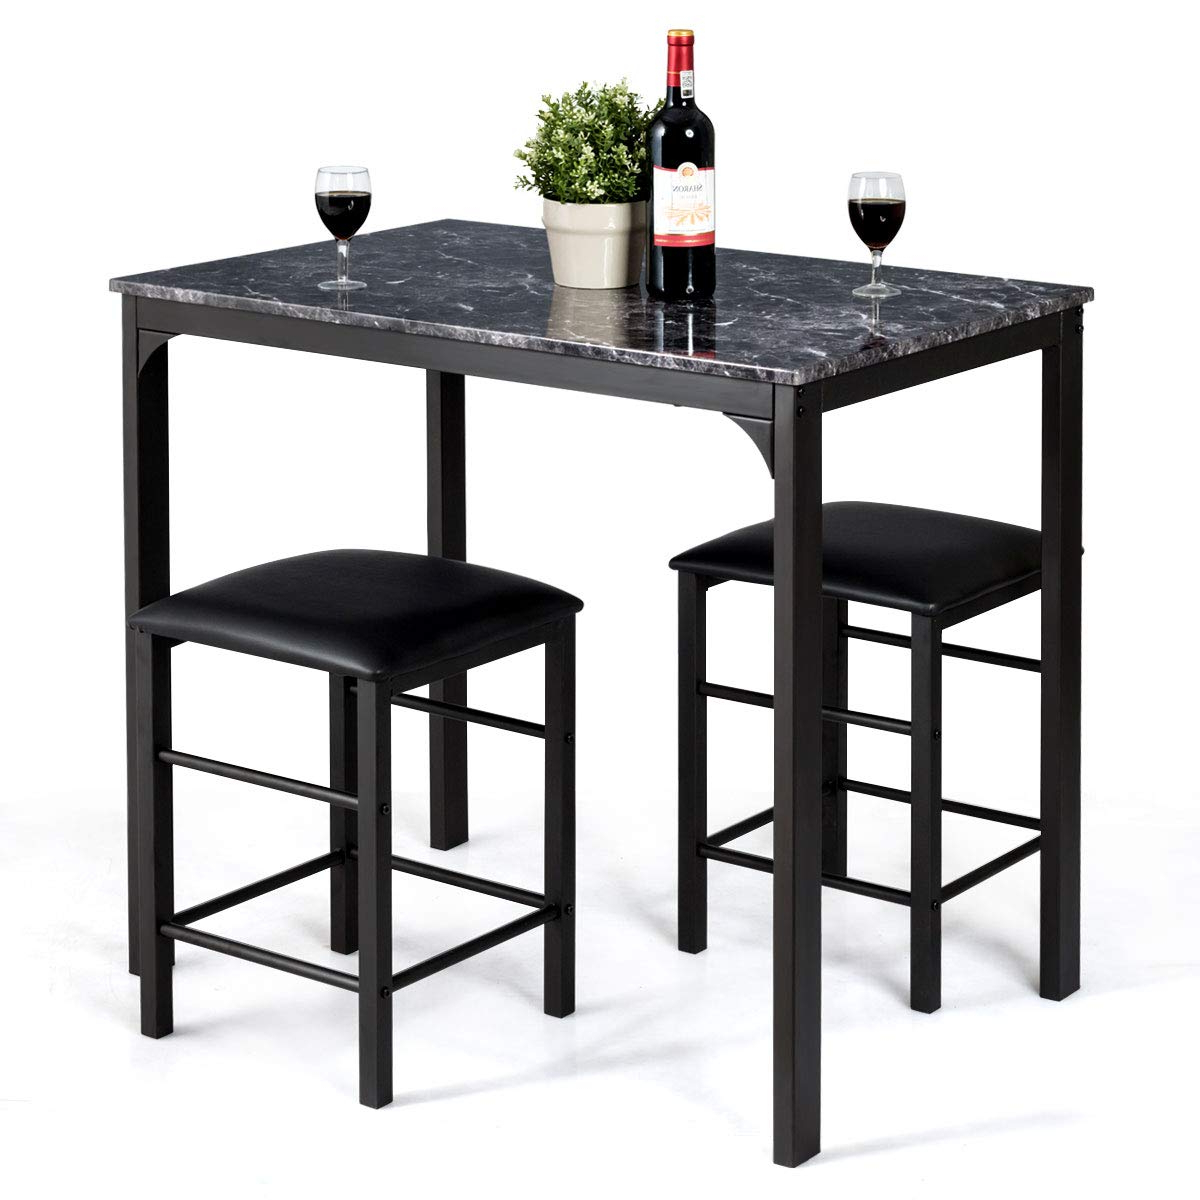 Faux Marble Finish Metal Contemporary Dining Tables Intended For Fashionable Giantex 3 Pcs Dining Table And Chairs Set With Faux Marble Tabletop 2  Chairs Contemporary Dining Table Set For Home Or Hotel Dining Room, Kitchen  Or (View 6 of 25)